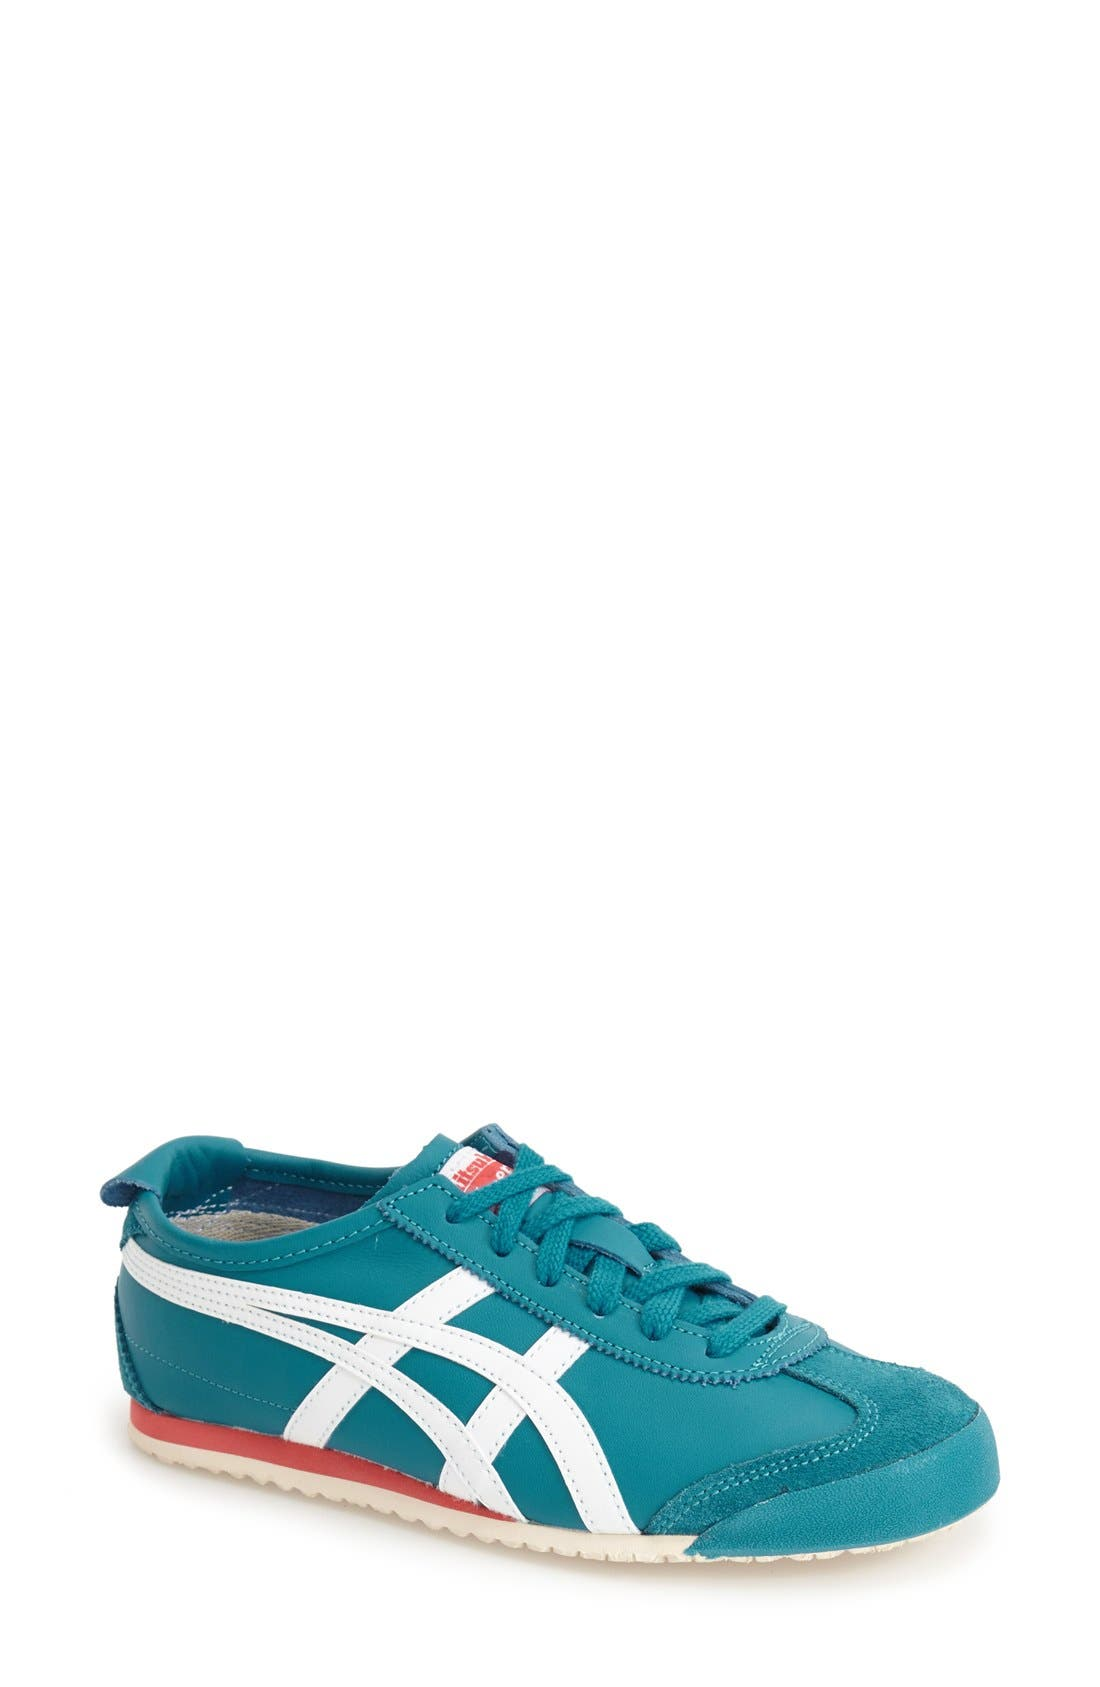 Main Image - Onitsuka Tiger™ 'Mexico 66™' Sneaker (Women)